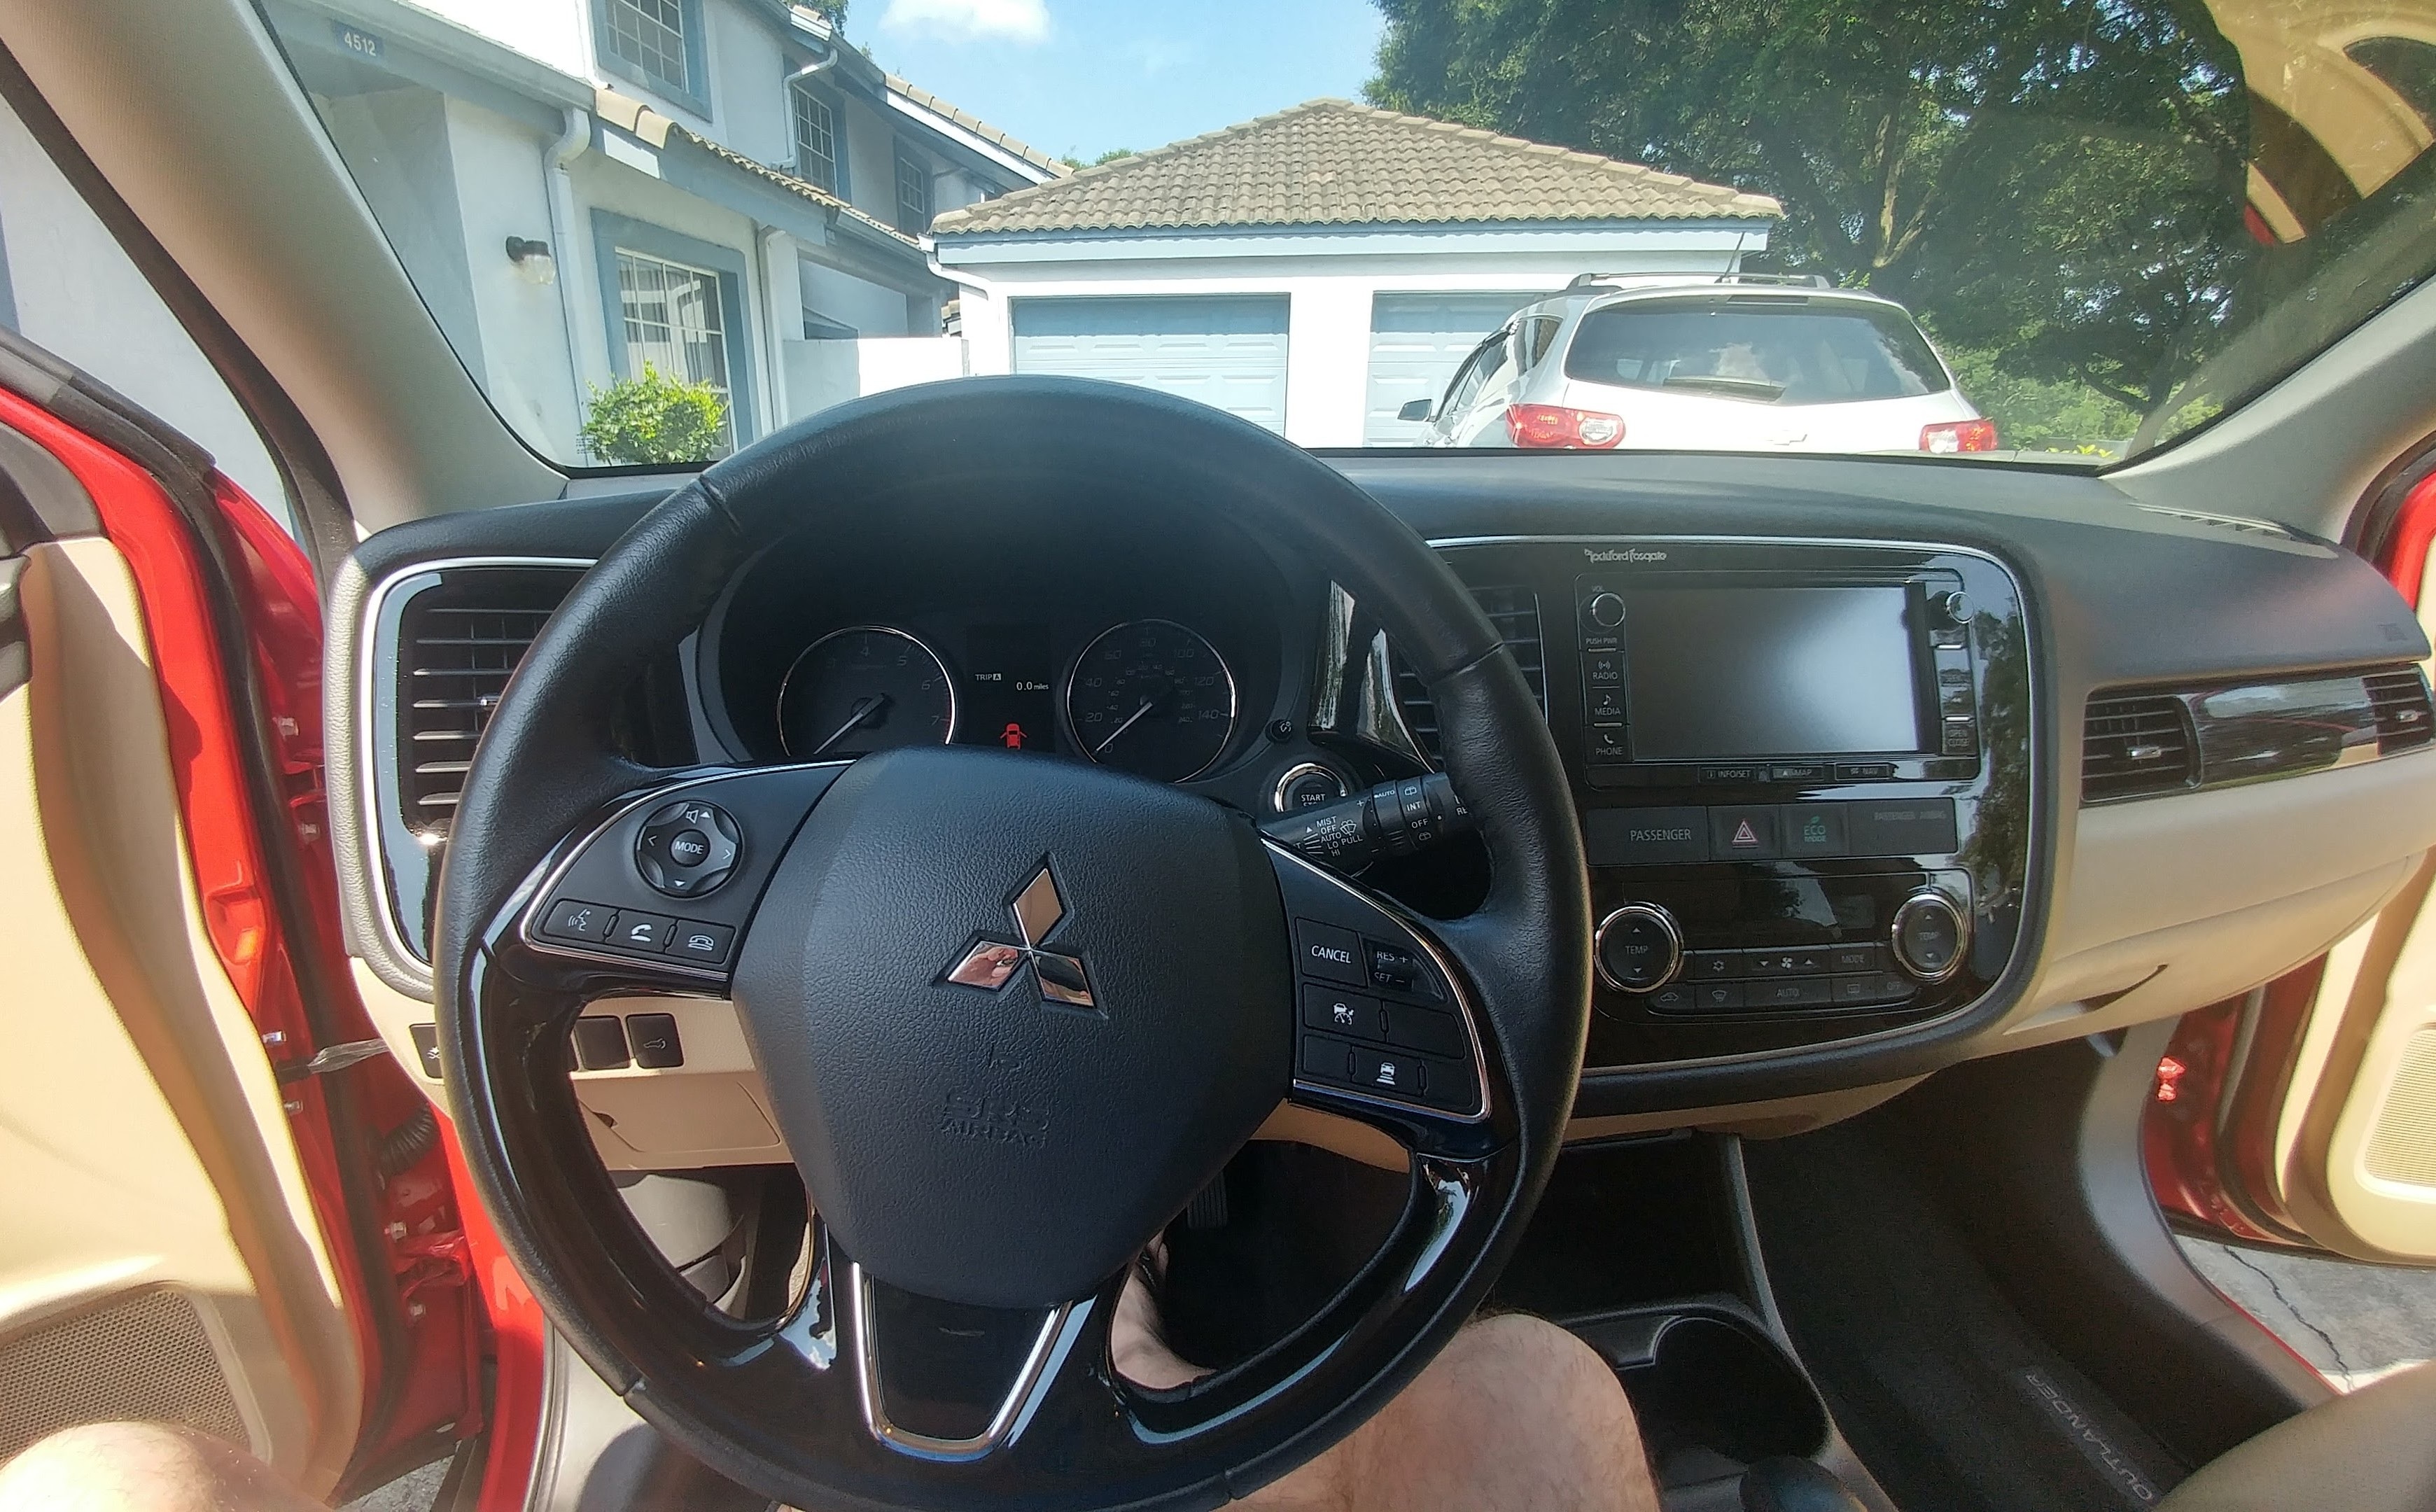 Mitsubishi Outlander instrument cluster and dashboard